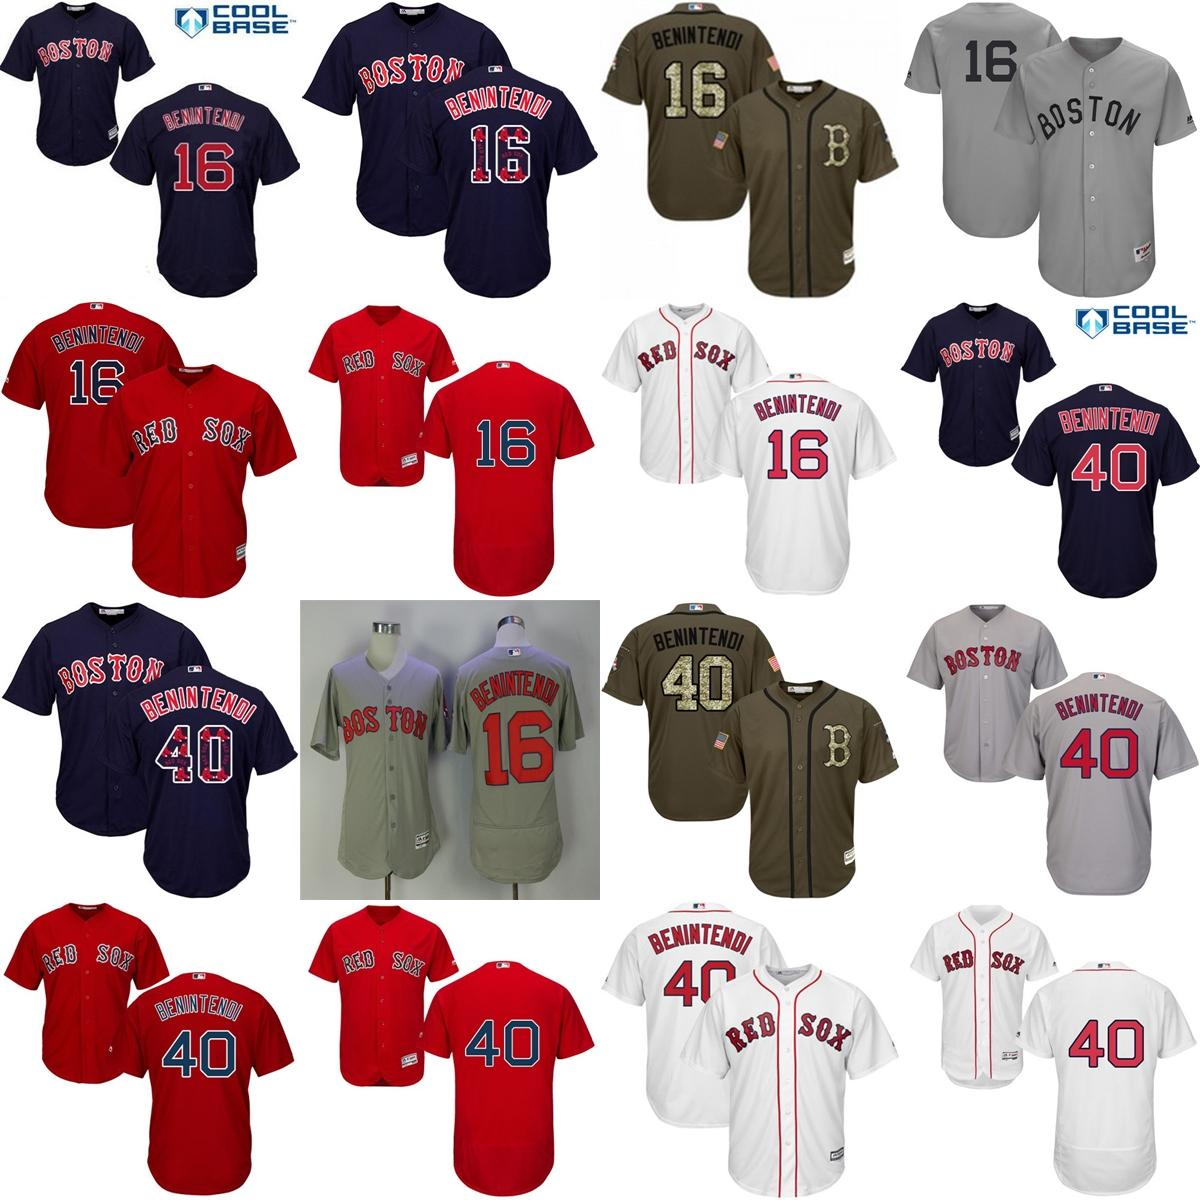 ... 2017 2017 Factory Outlet Mens Ladys Kids Boston Red Sox 16 40 Andrew  Benintendi White Red ... 7620882c9f5